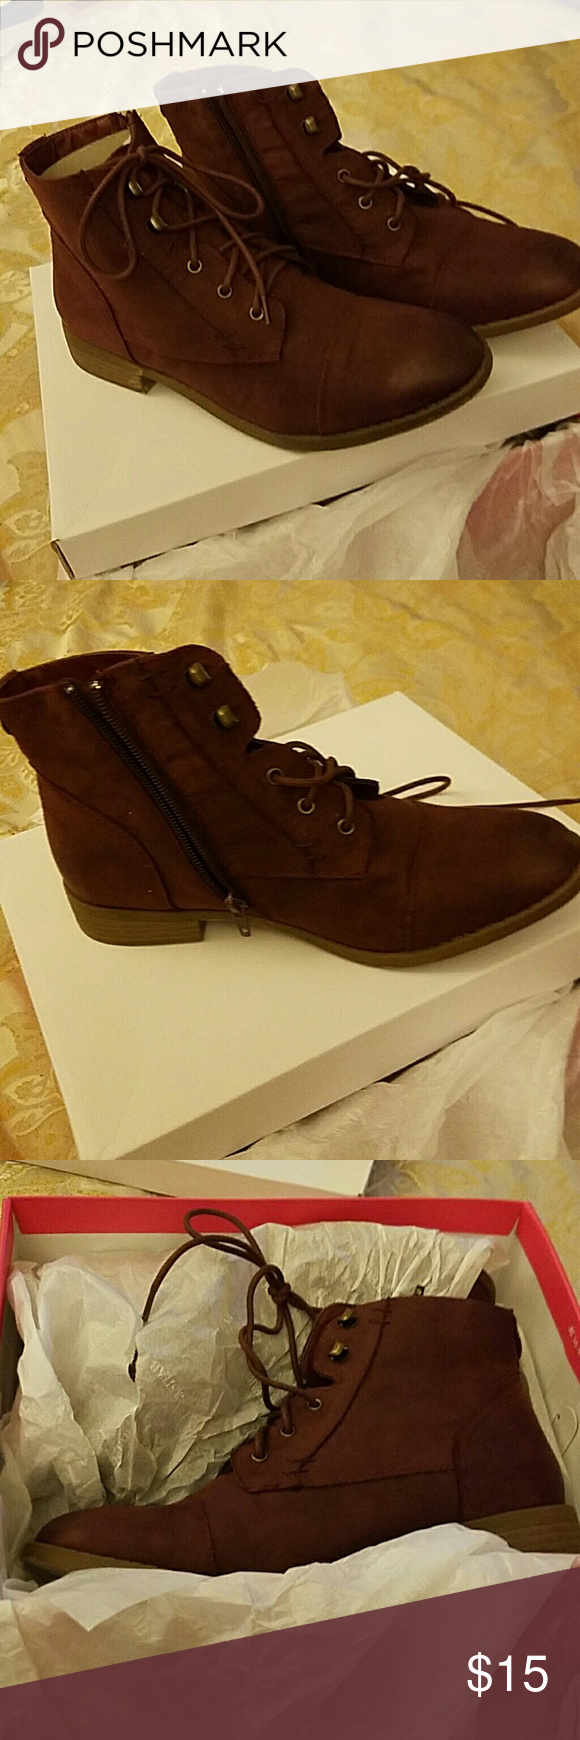 New Ankle Boot Burgundy size 9 Super stylish, Just Fab Miah ankle boot. Inside zipper makes it very comfortable and easy to get off and on  They lace up front and amazing suede burgundy color, will quickly become your go to daily boot. You can't go wrong. They belong in your closet. JustFab Shoes Ankle Boots & Booties